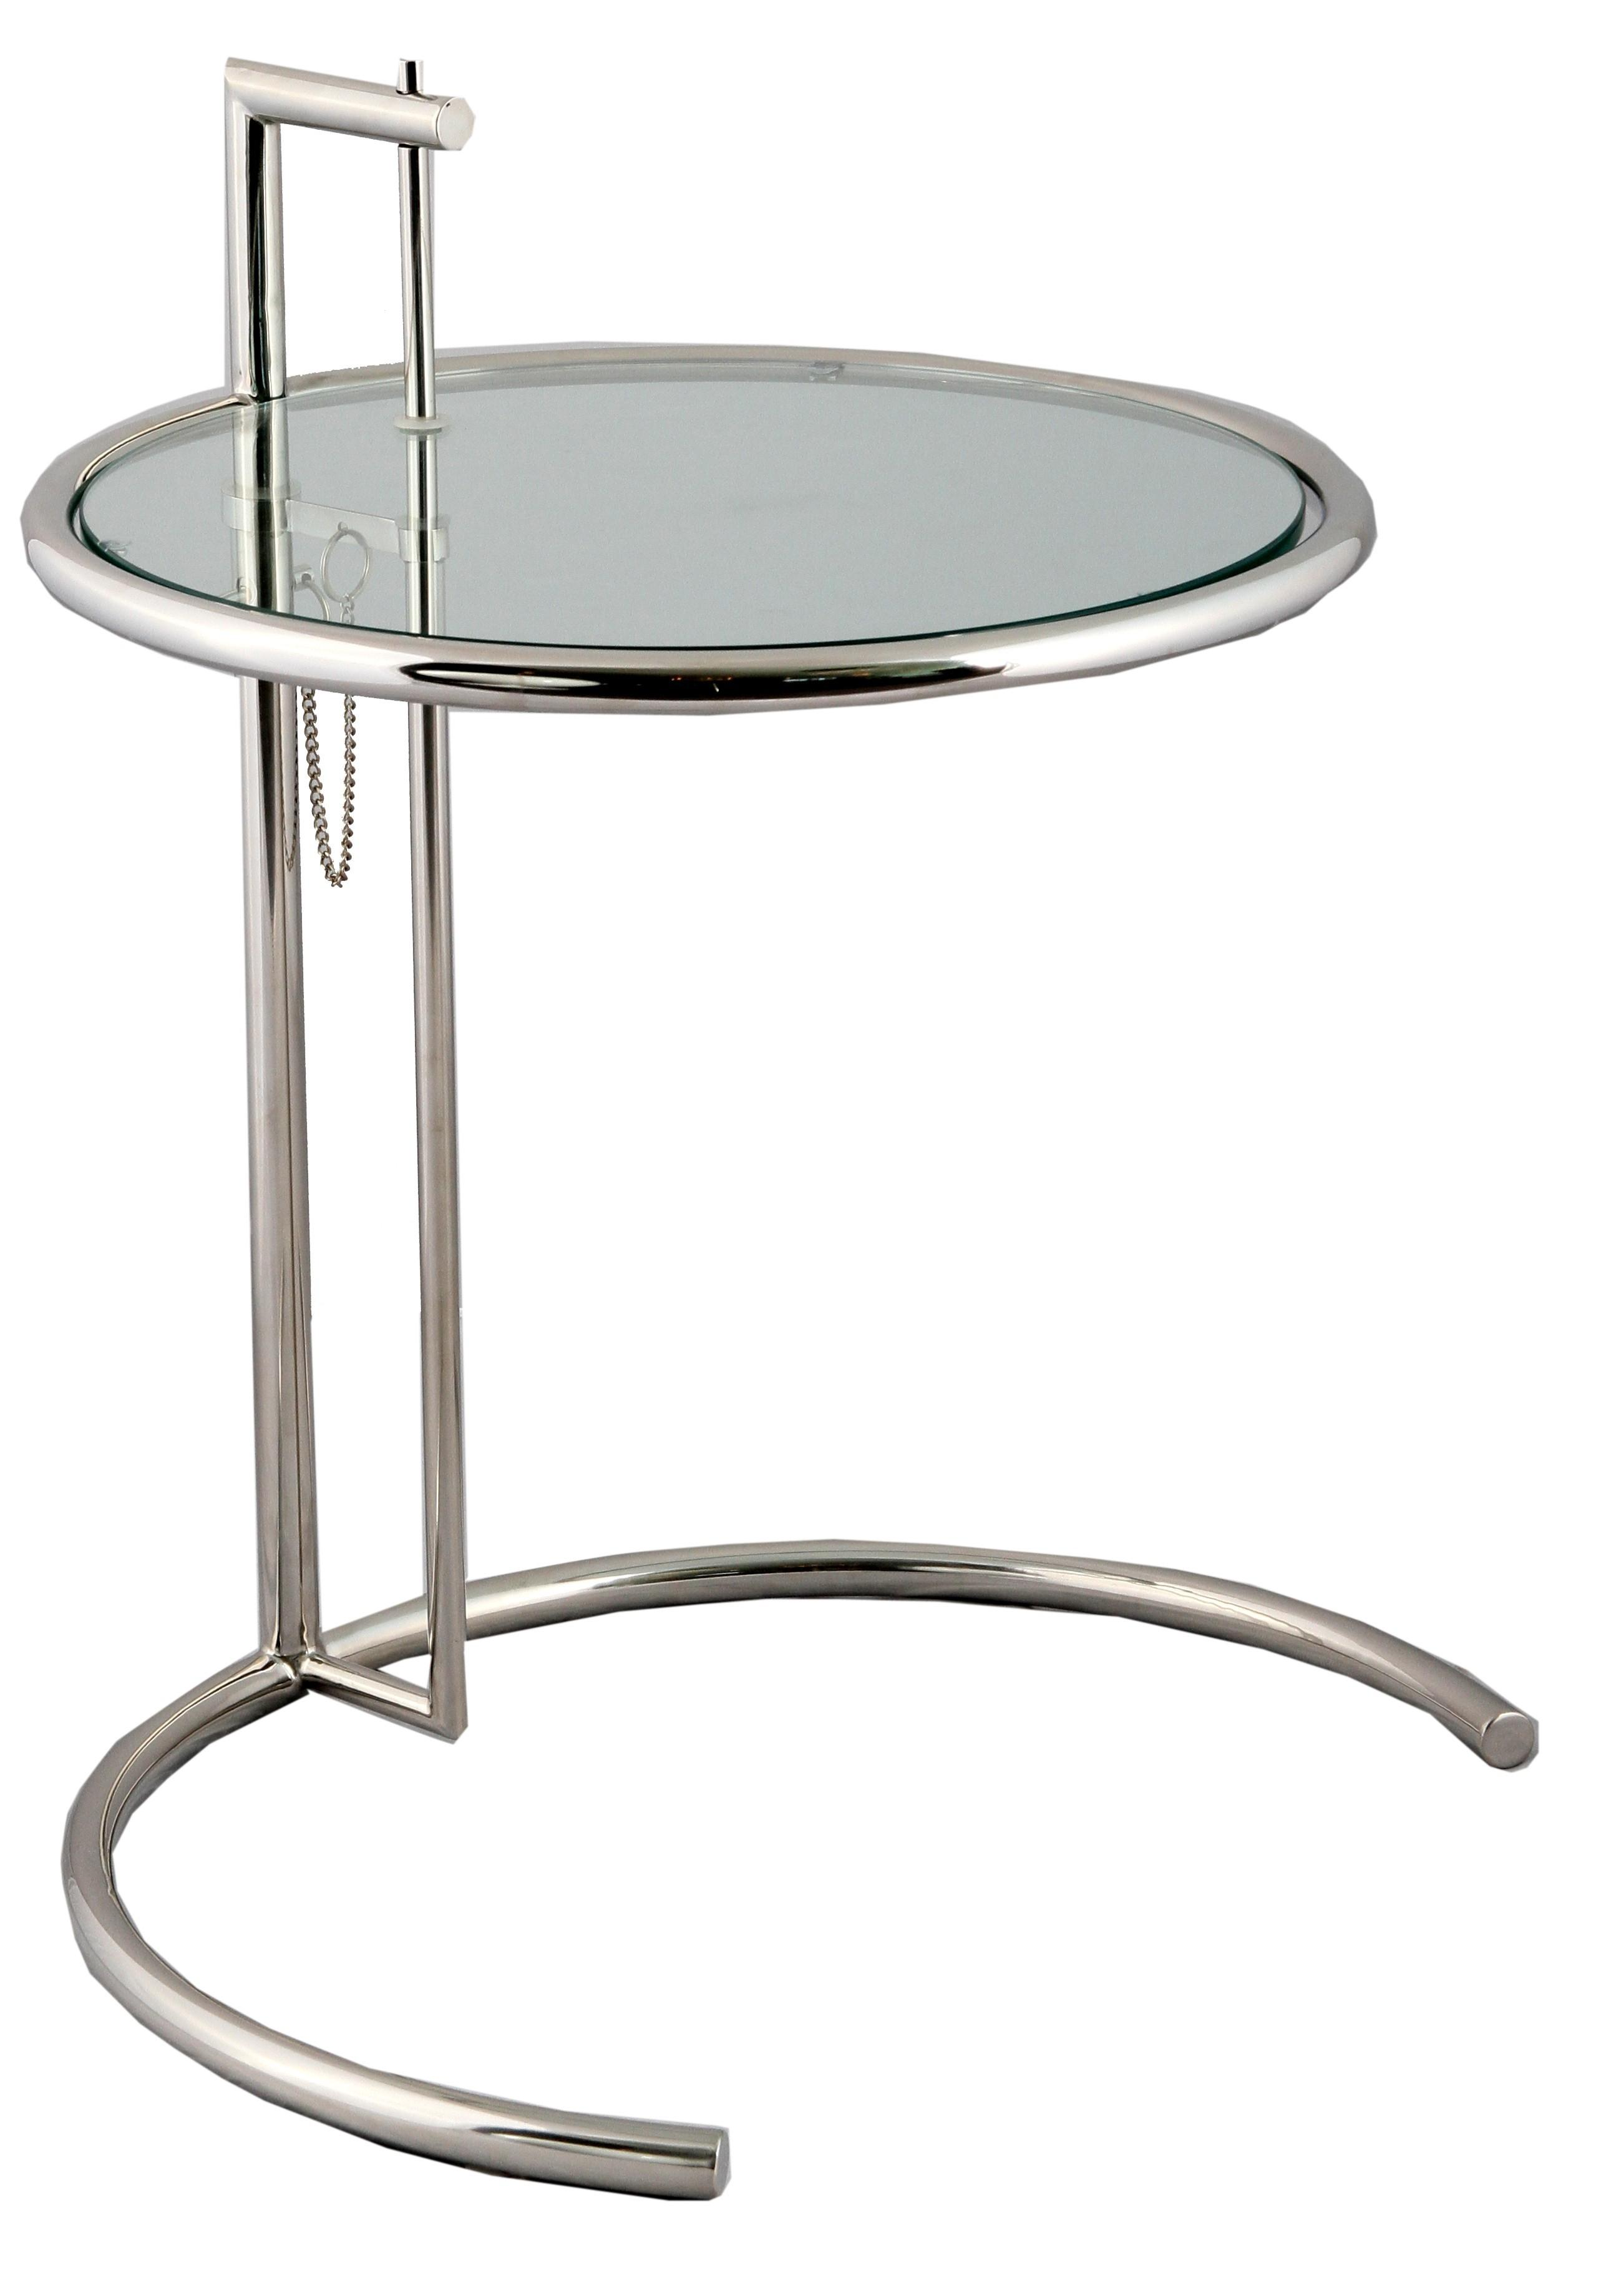 Replica Eileen Gray Adjustable Side Table